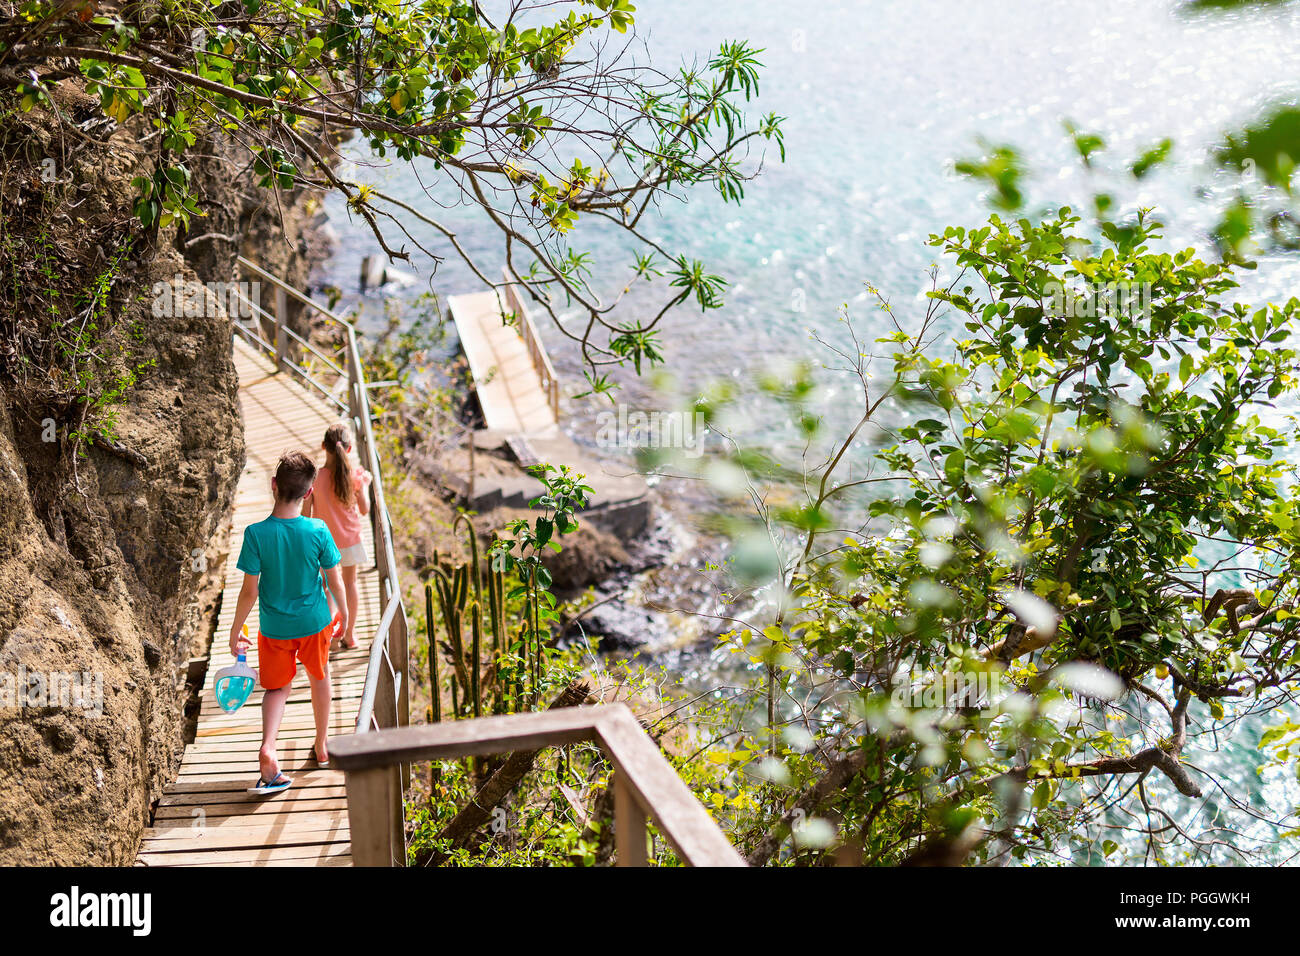 Kids brother and sister outdoors exploring tropical island on summer day - Stock Image